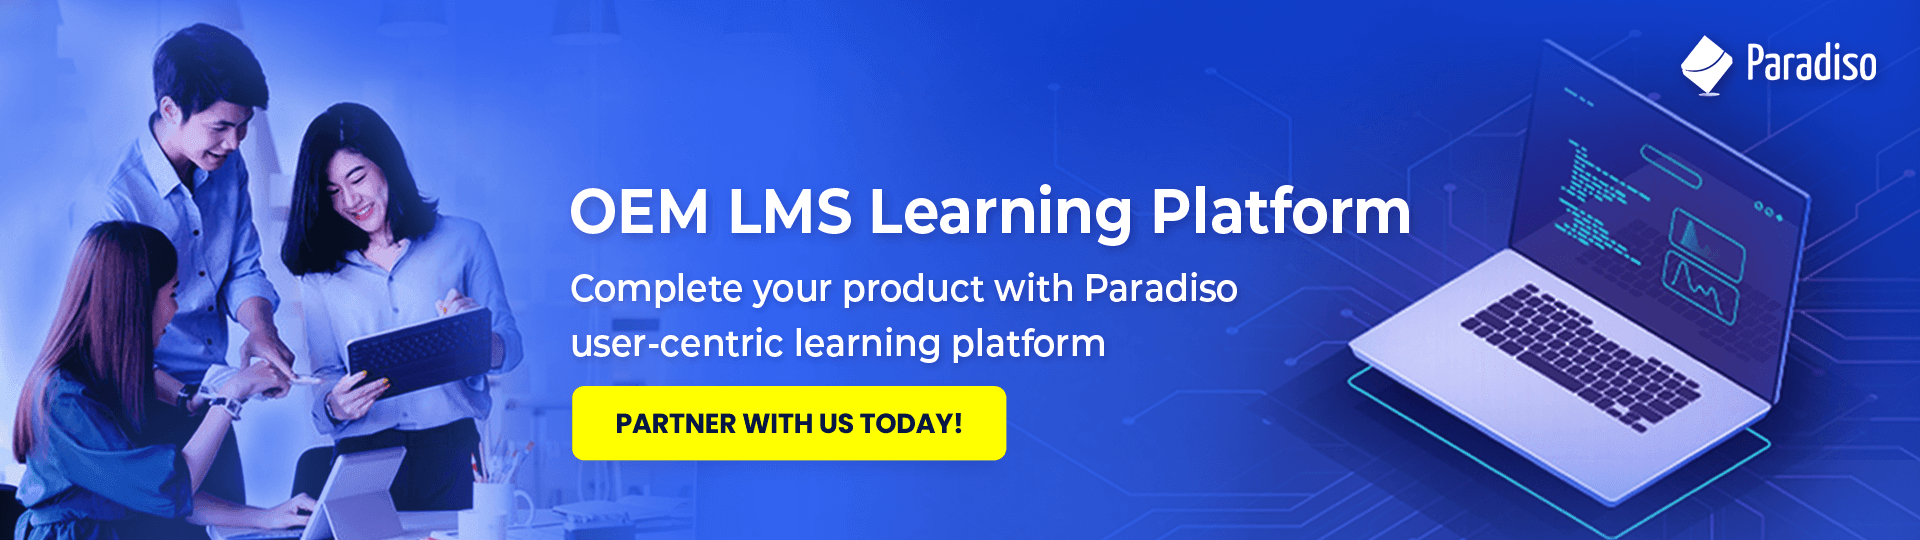 Resell Paradiso's OEM LMS as part of your own software suite